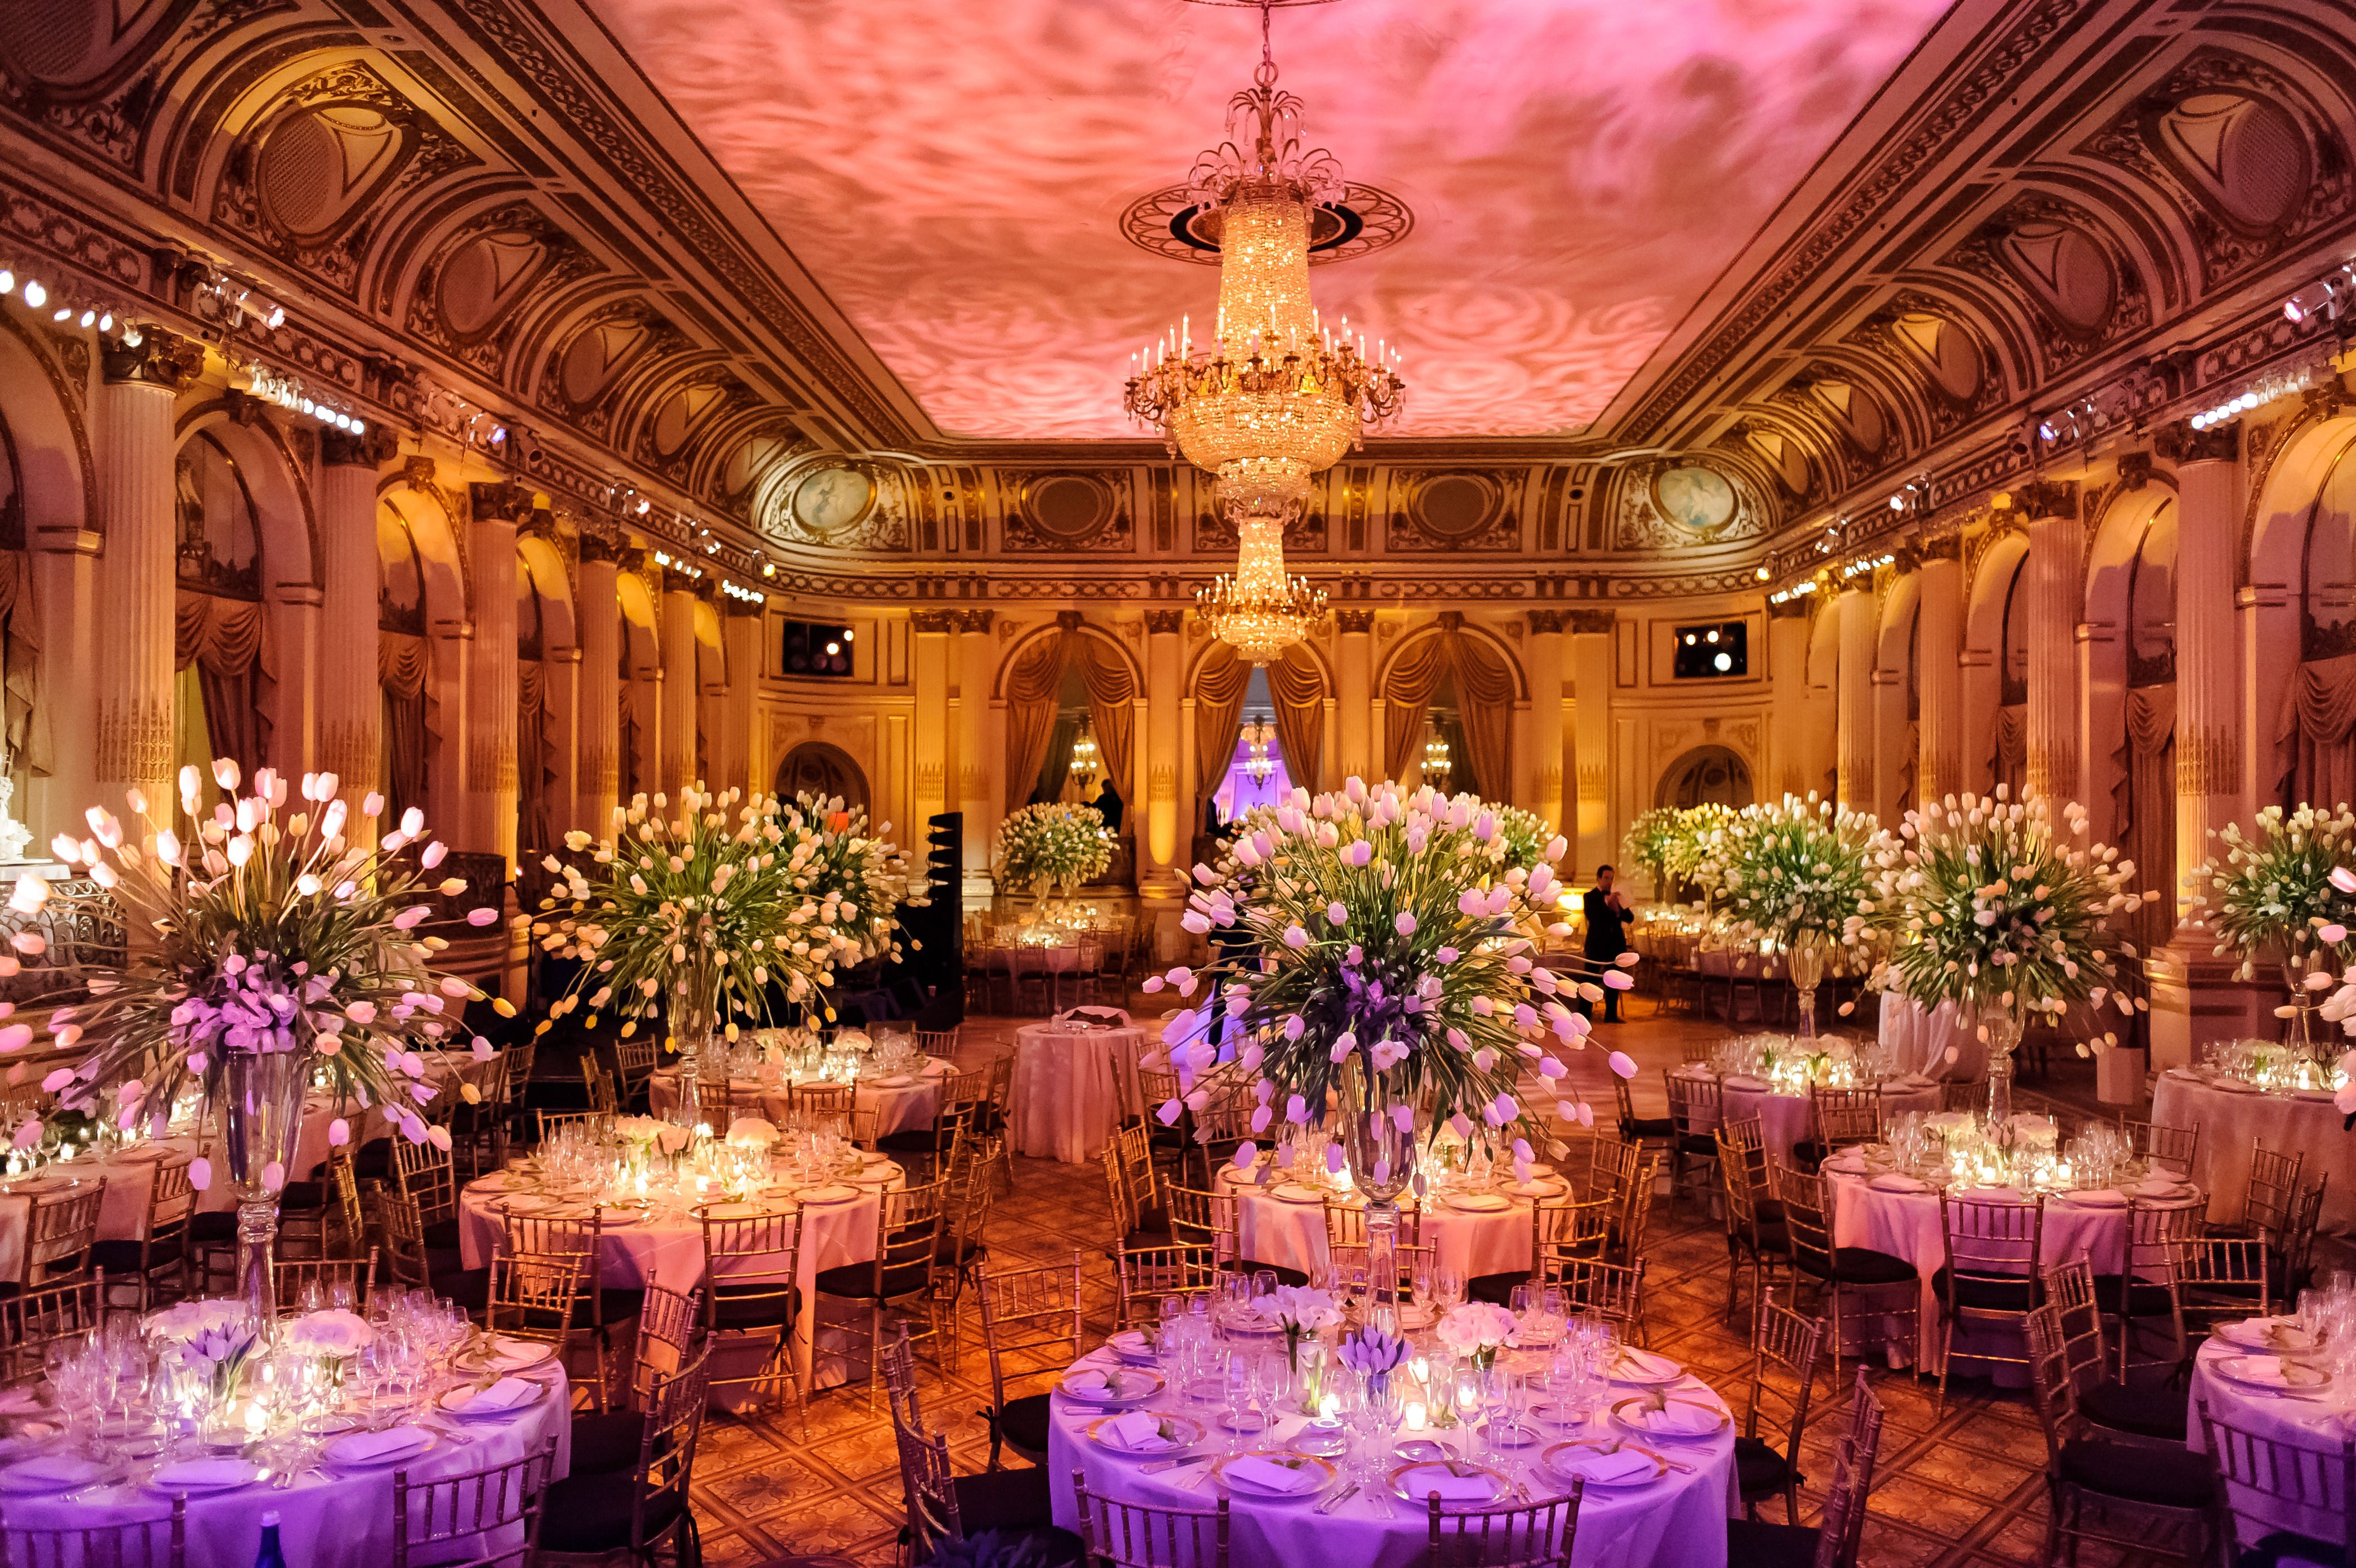 What A Spectacular Night At The Plaza Hotel By Thousands Of Tulips Filled Grand Ballroom